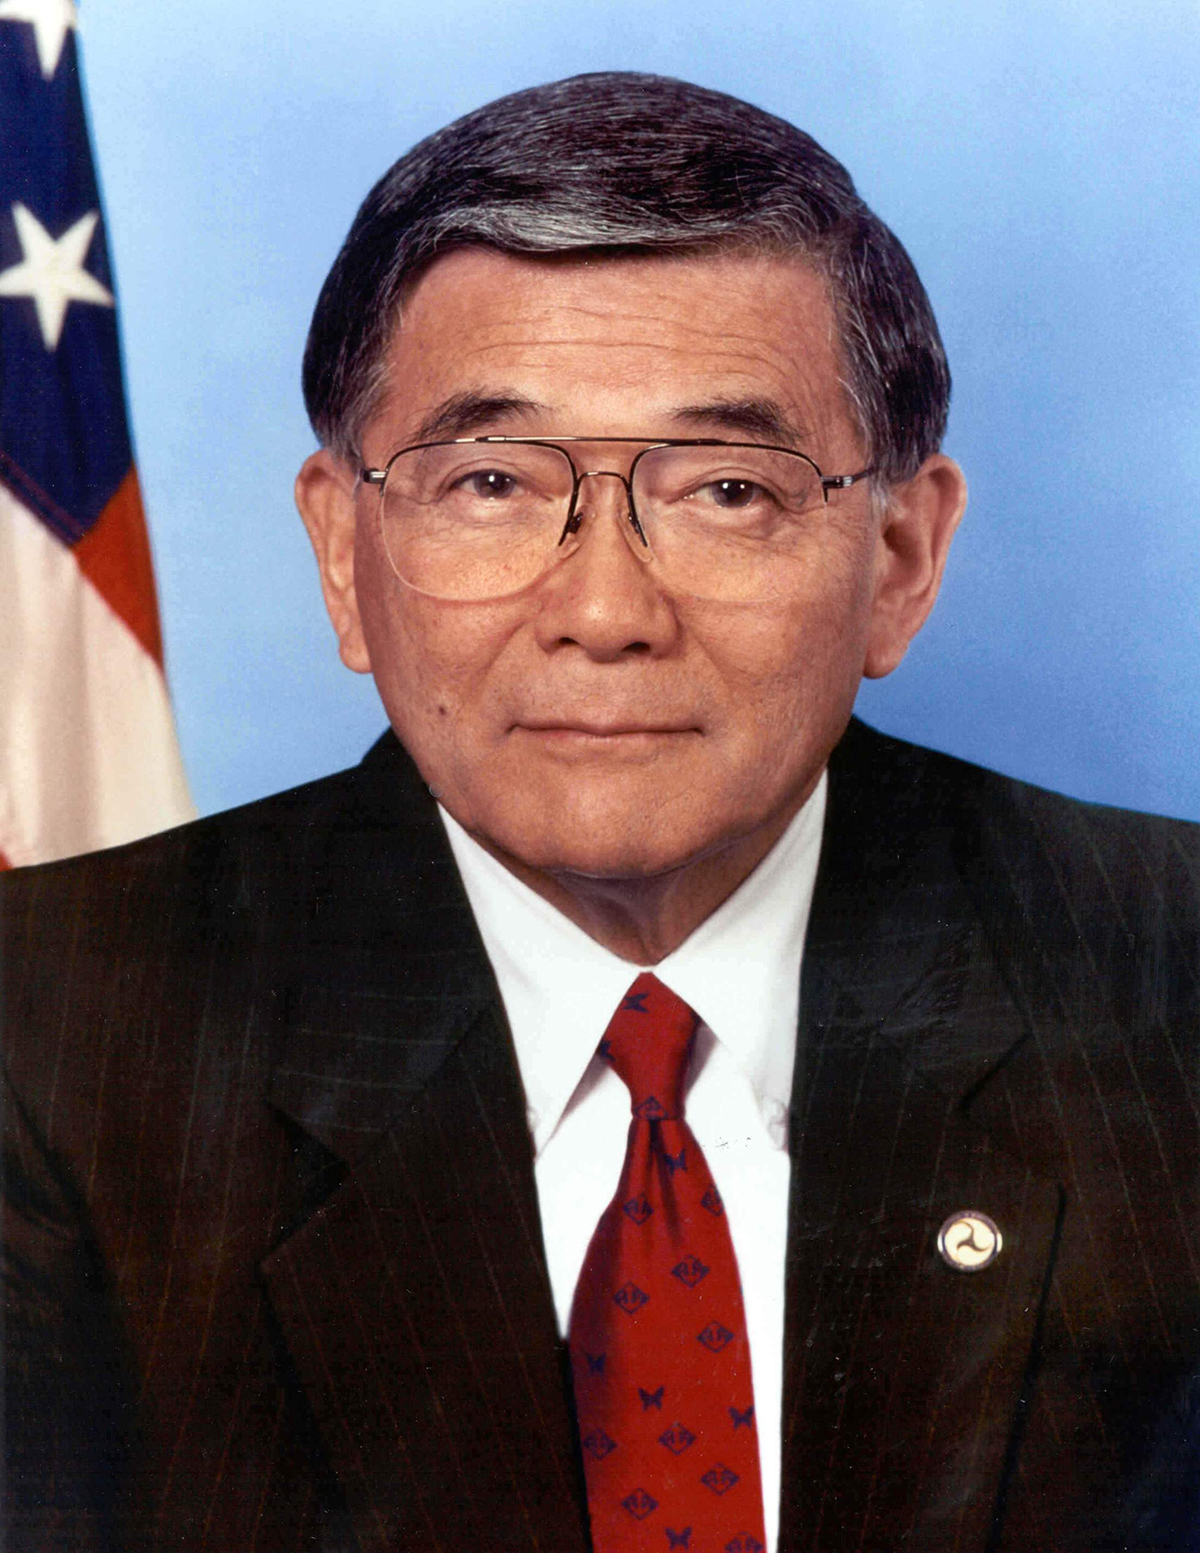 Event - Lecture and Book Signing with Norman Mineta